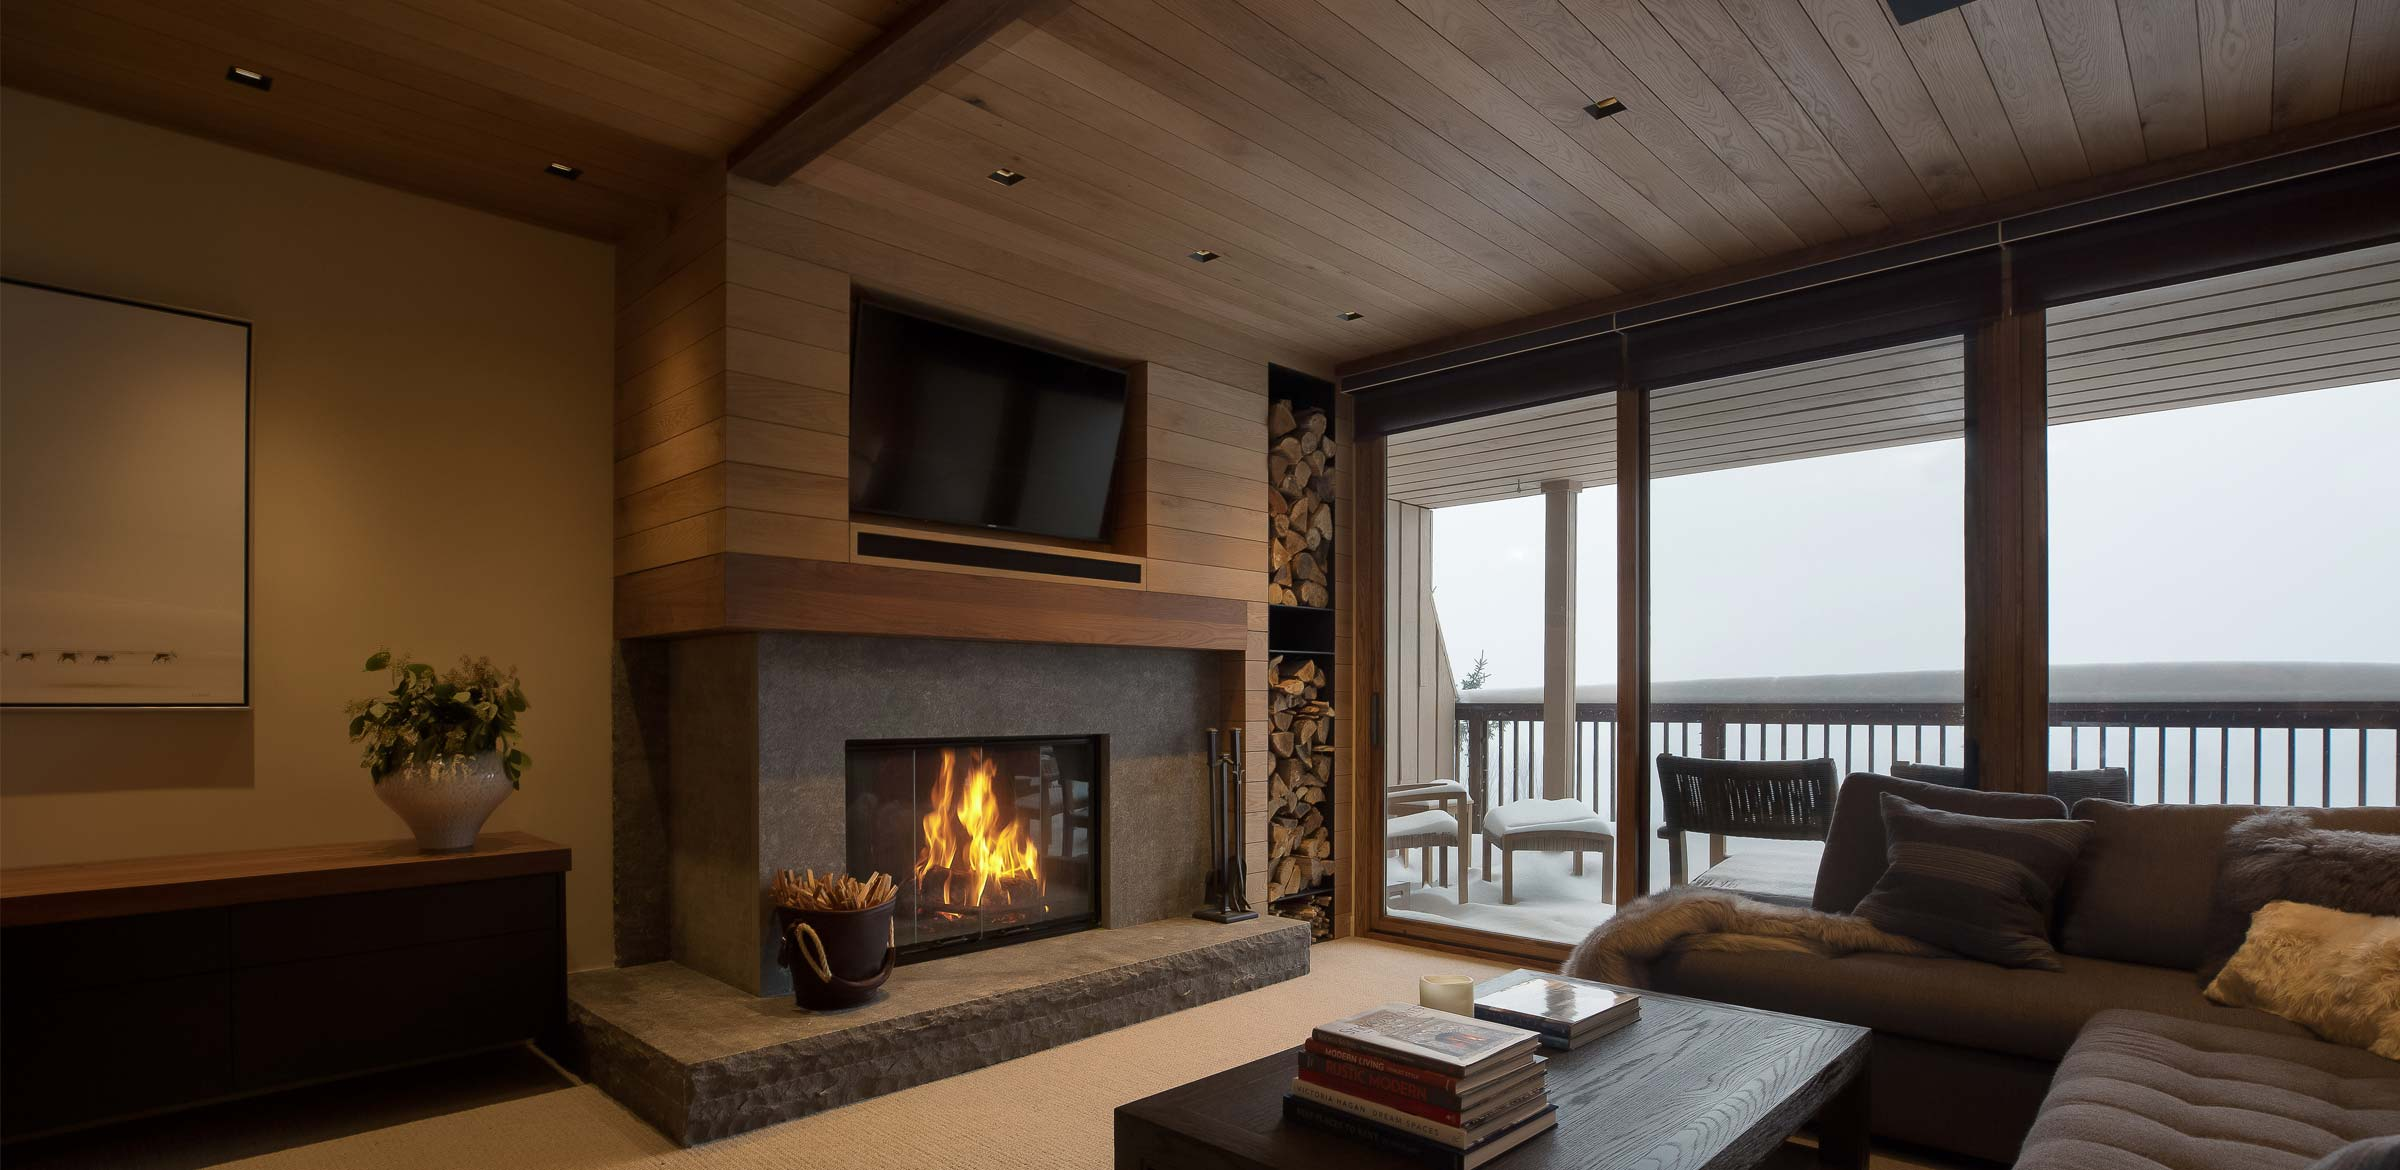 Ski Chalet Interior Design newschool builders • waitsfield, vermont • mountain ski chalet